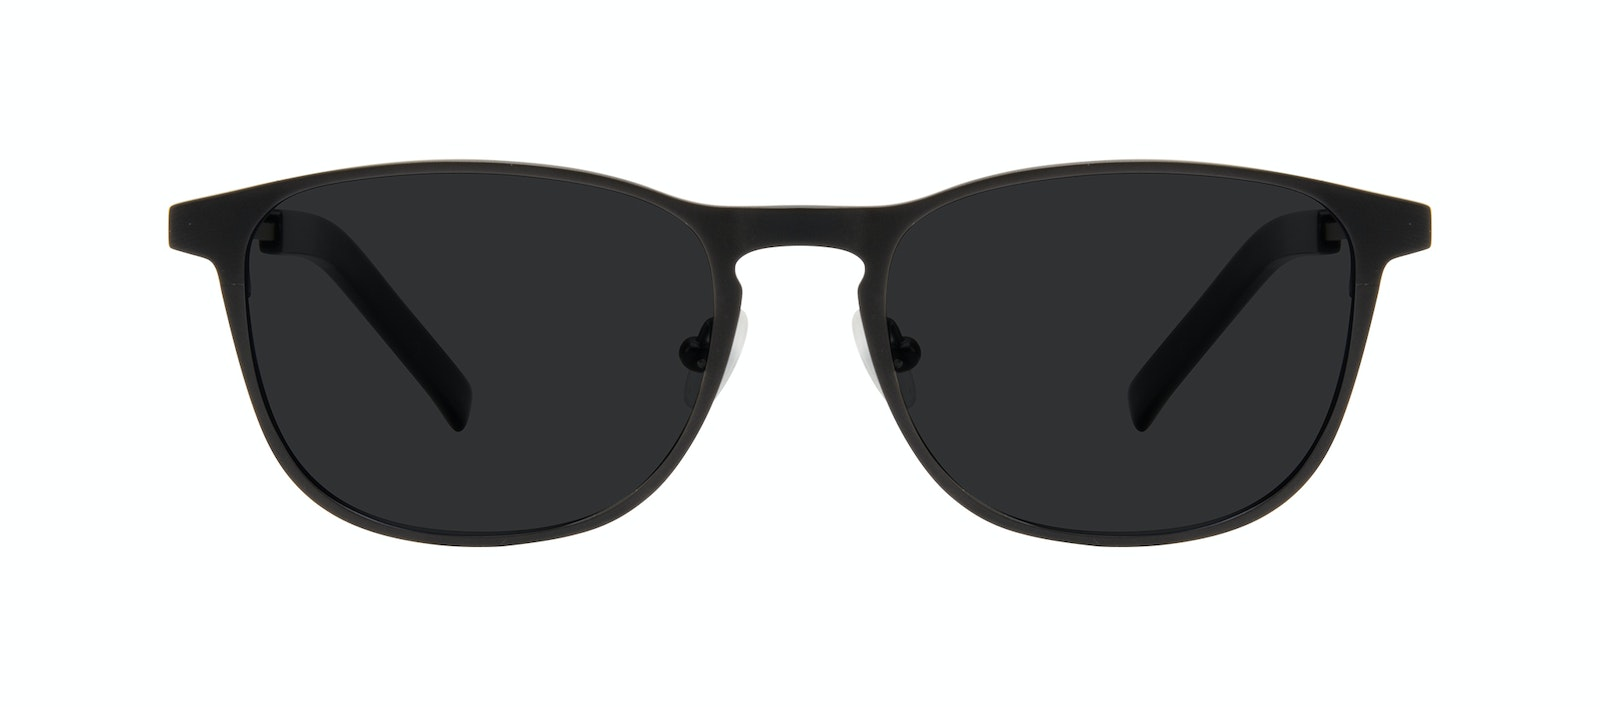 Affordable Fashion Glasses Square Sunglasses Men Elevate Onyx Matte Front